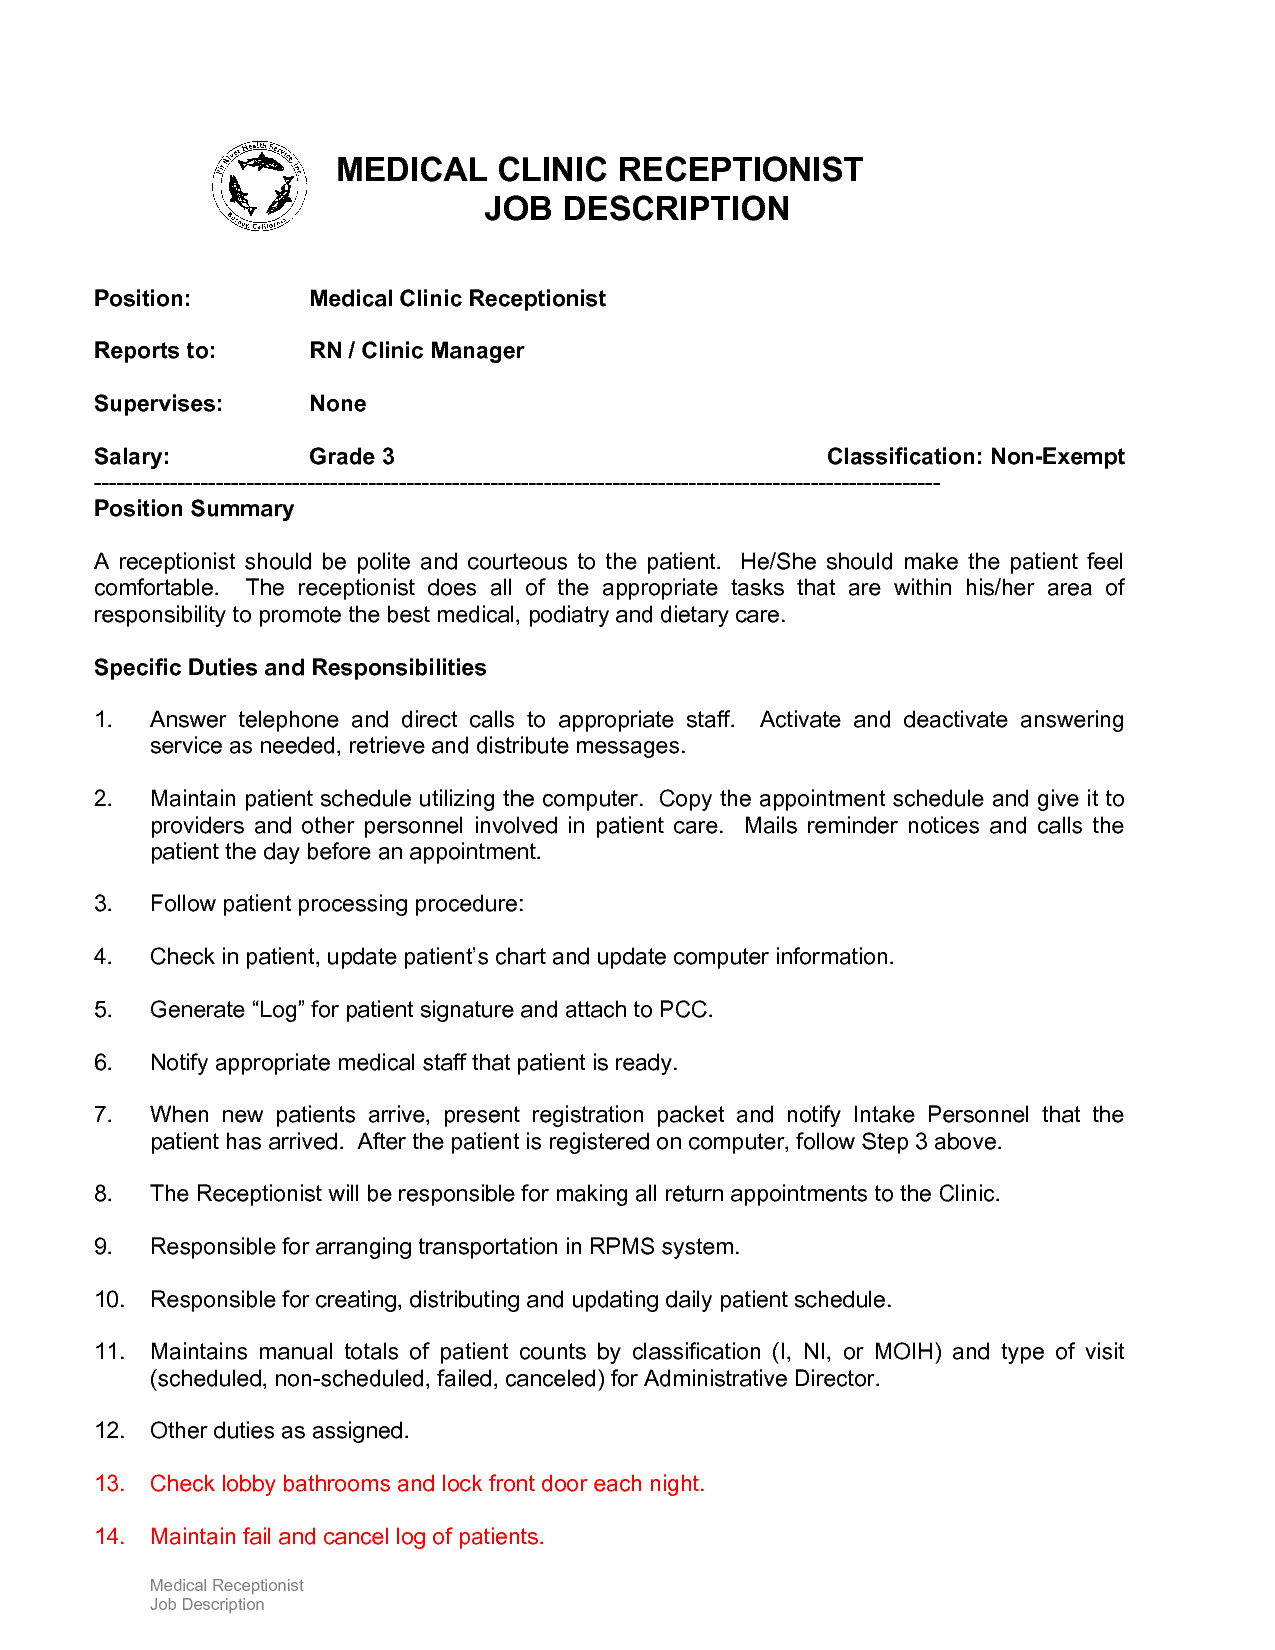 Medical Assistant Receptionist Resume 10 Example Resume Receptionist Job Description